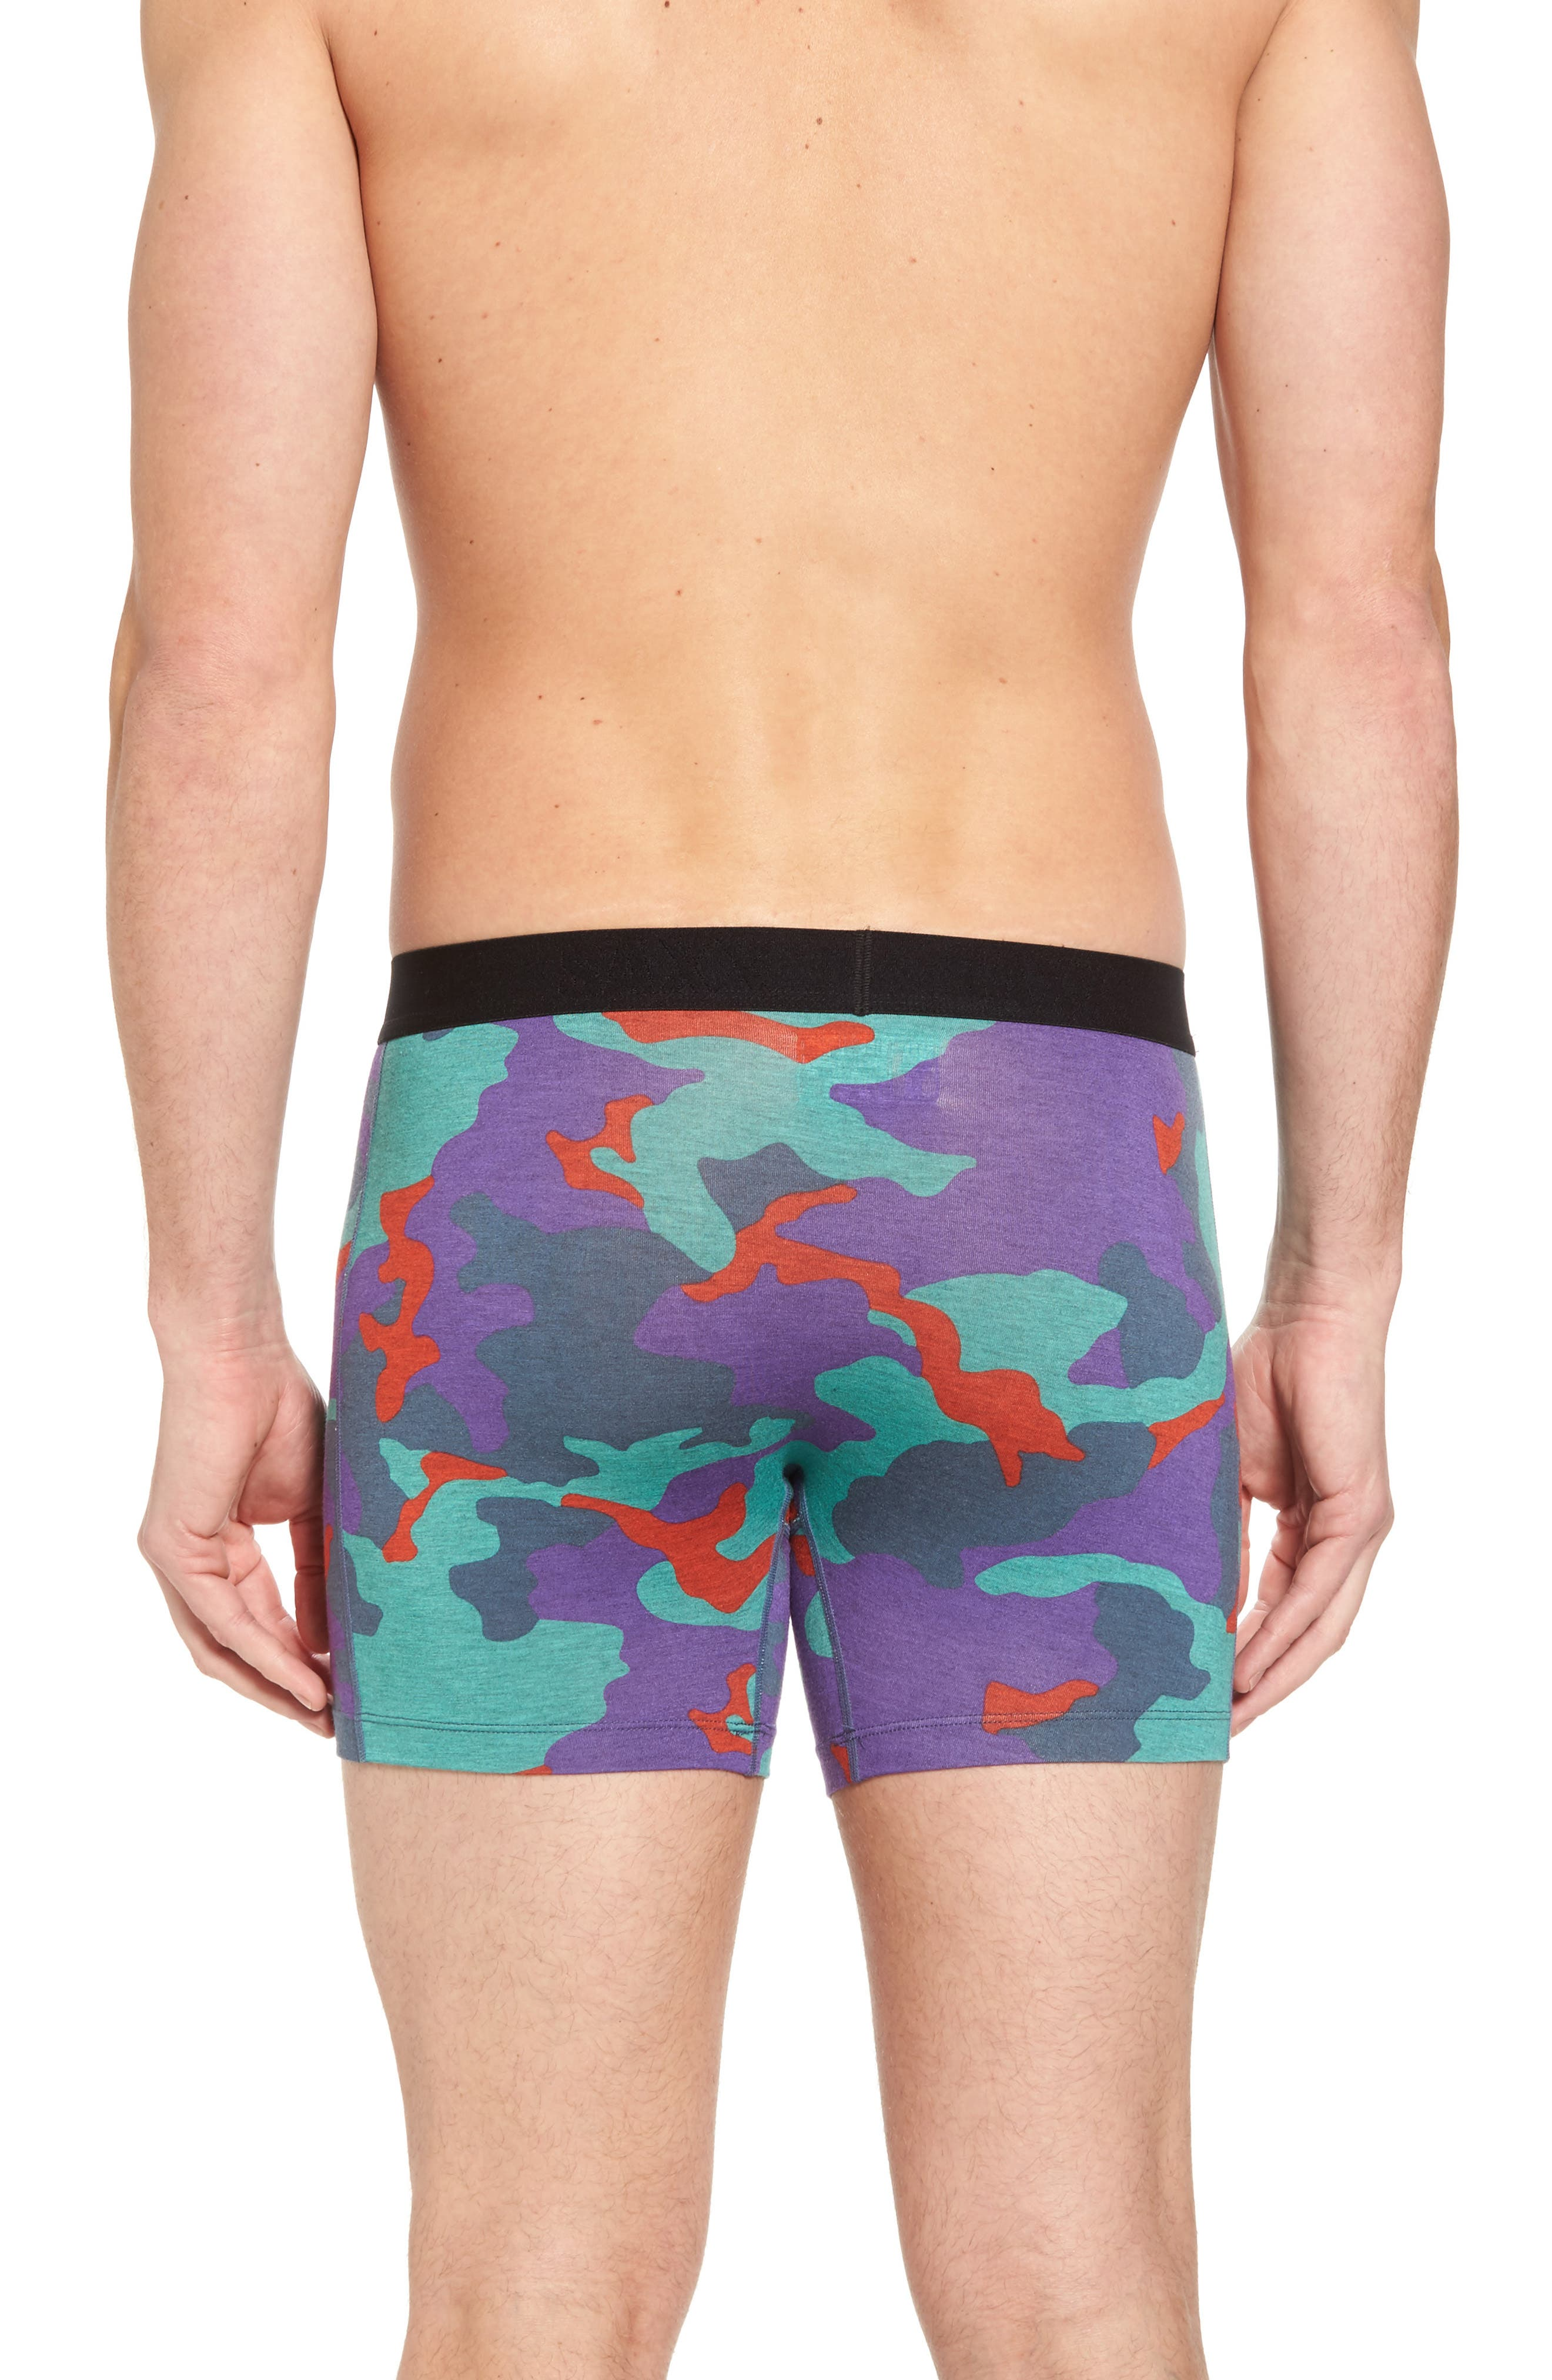 Vibe Stretch Boxer Briefs,                             Alternate thumbnail 2, color,                             521